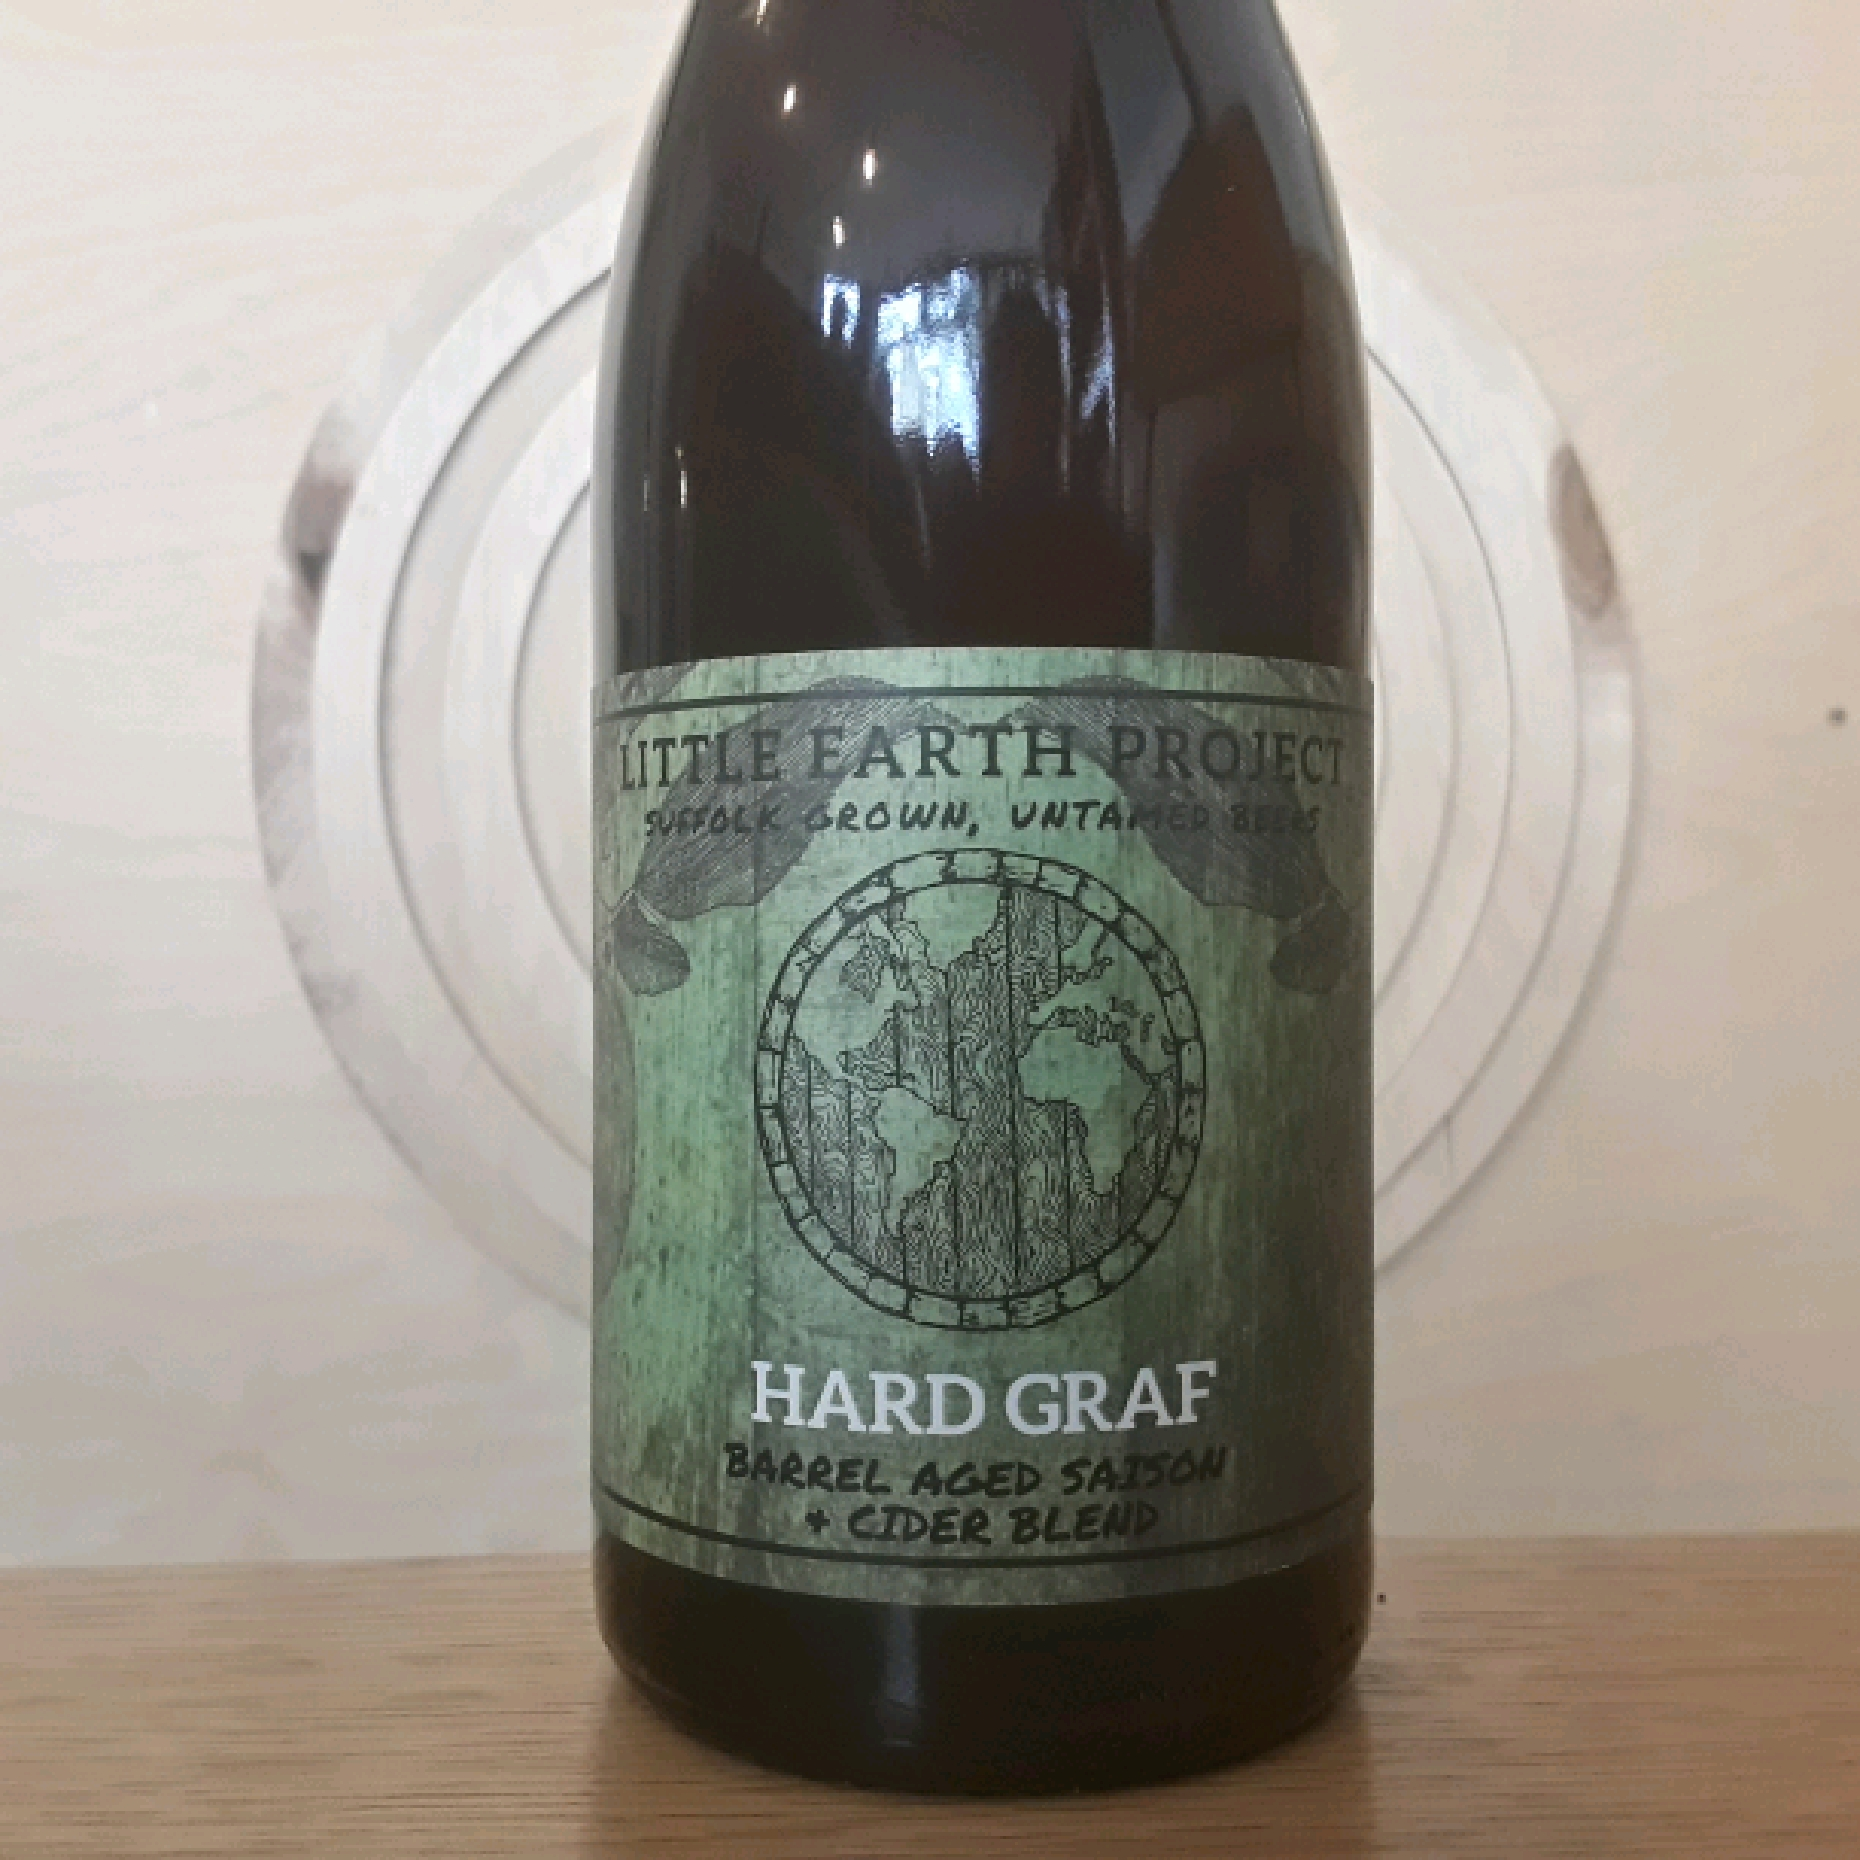 Little Earth Project | Hard Graf | Barrel Aged Saison and Cider Blend